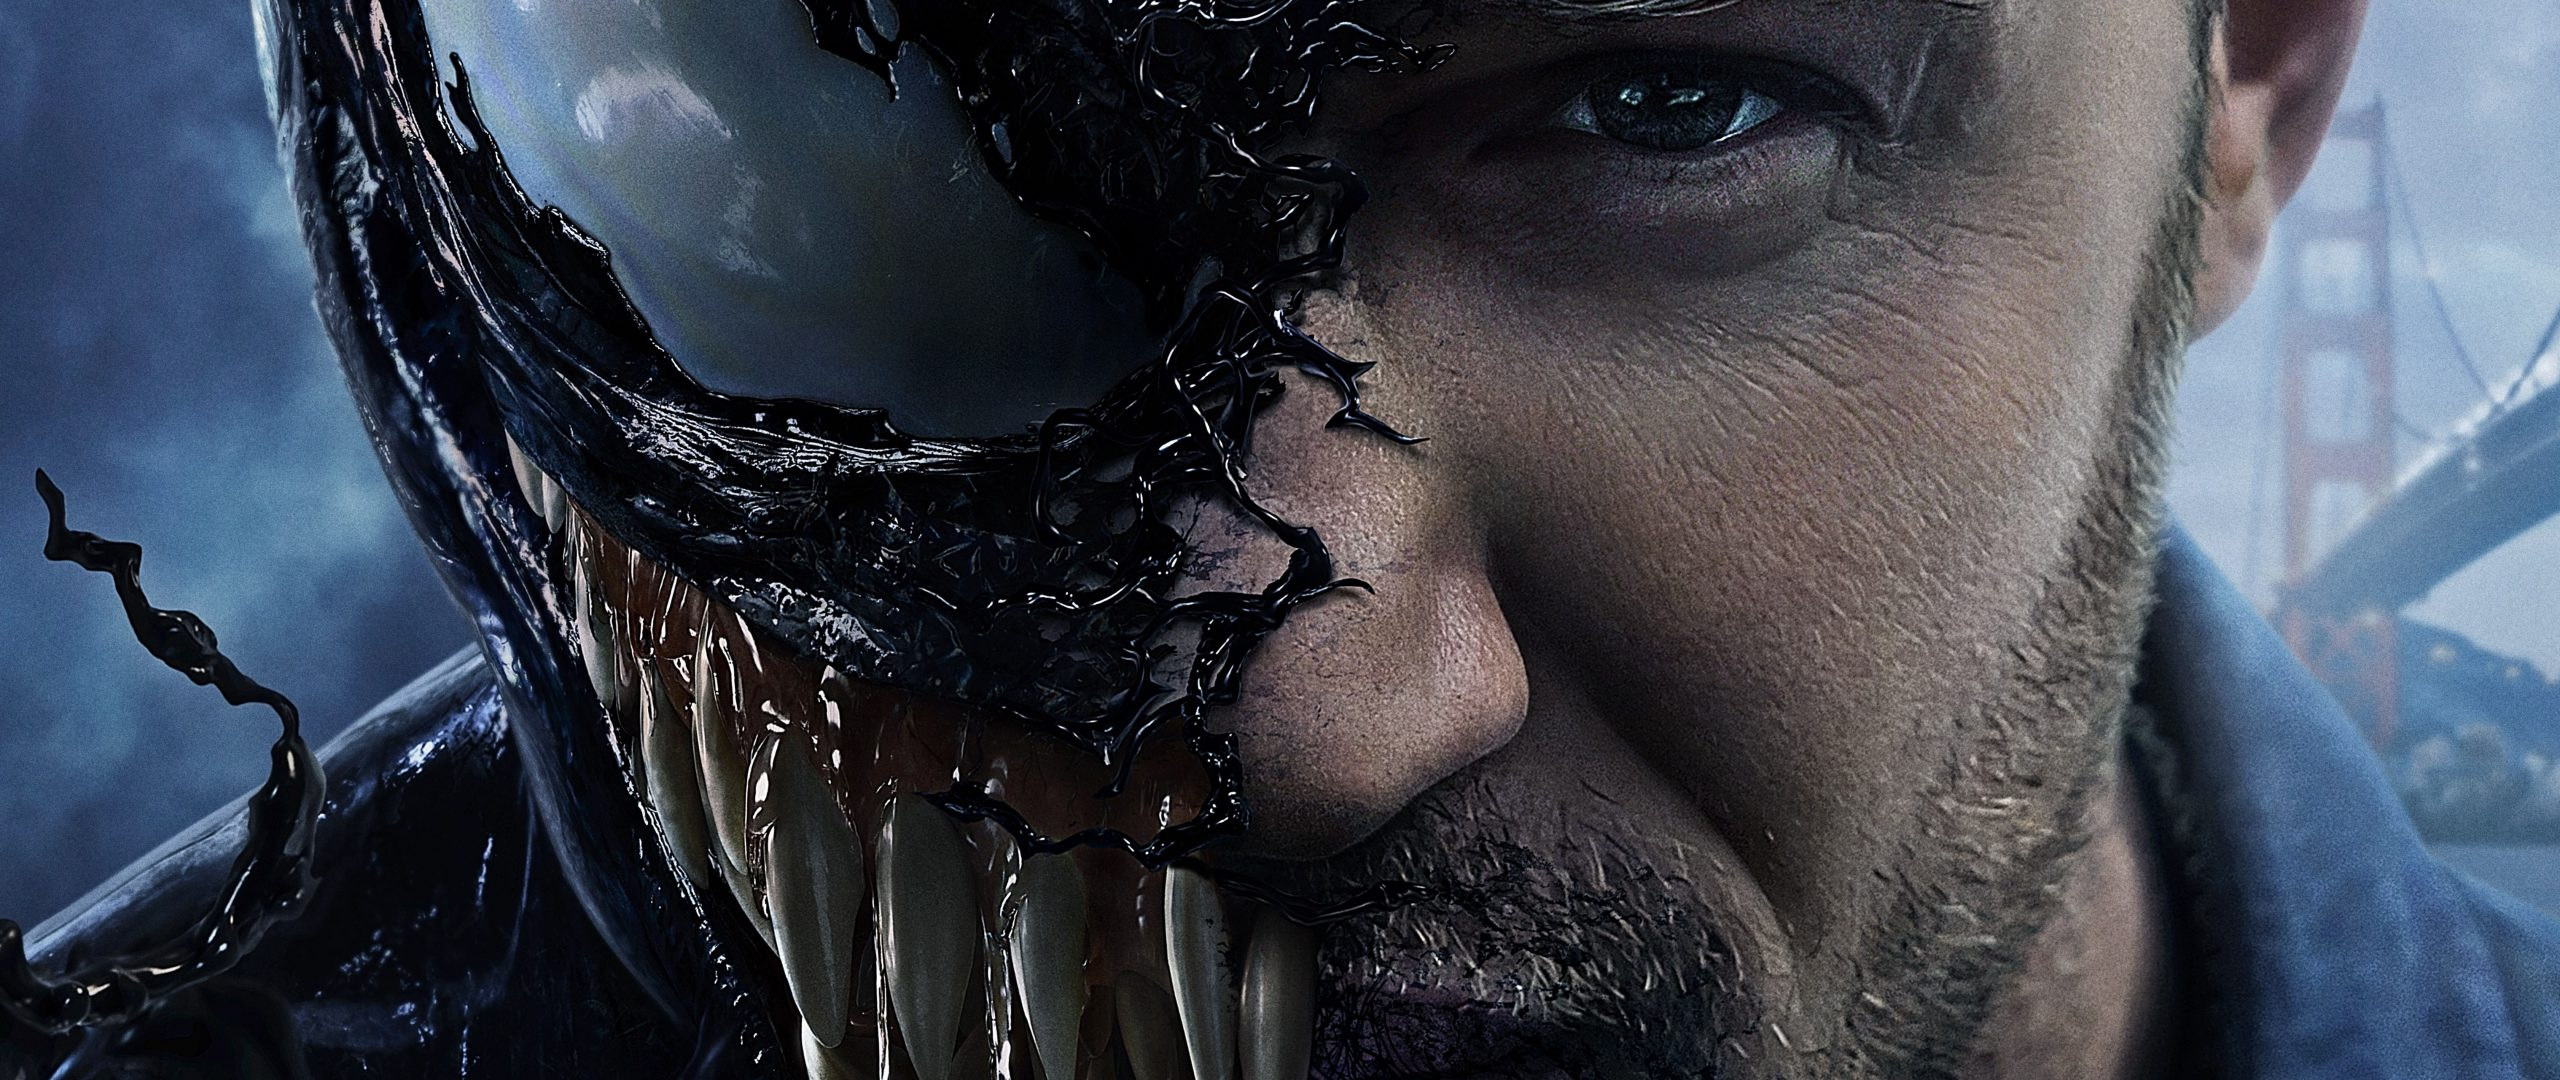 Venom Tom Hardy 2018 Movie 5k Wallpaper Best Wallpapers